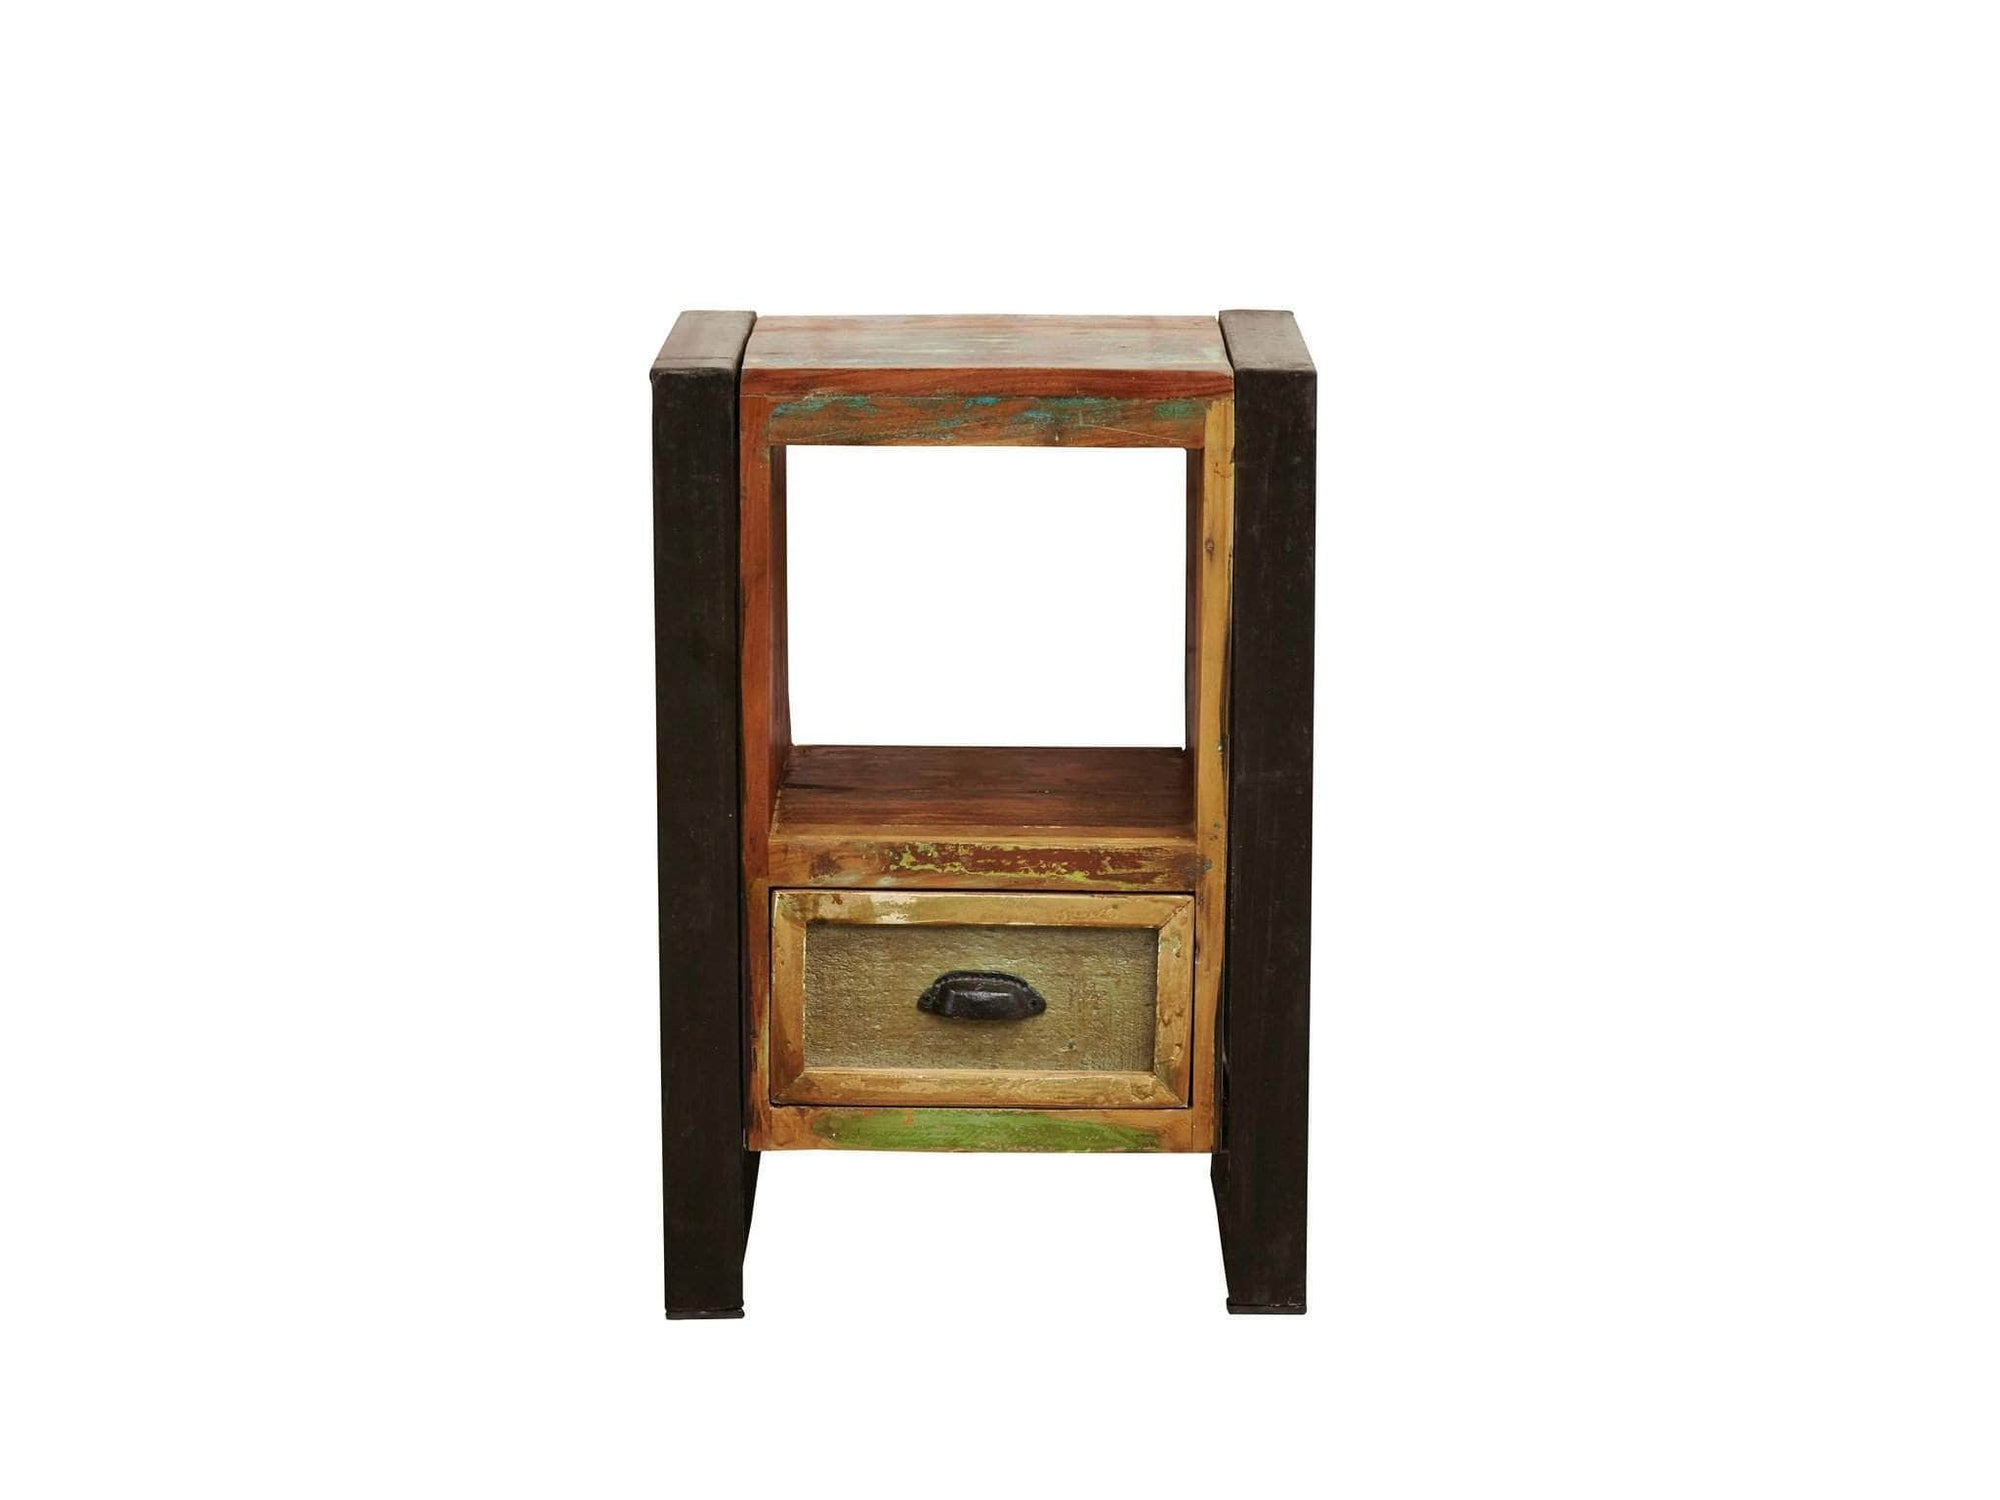 Reclaimed wood table for lamps or bedside items, with one small drawer at bottom of unit